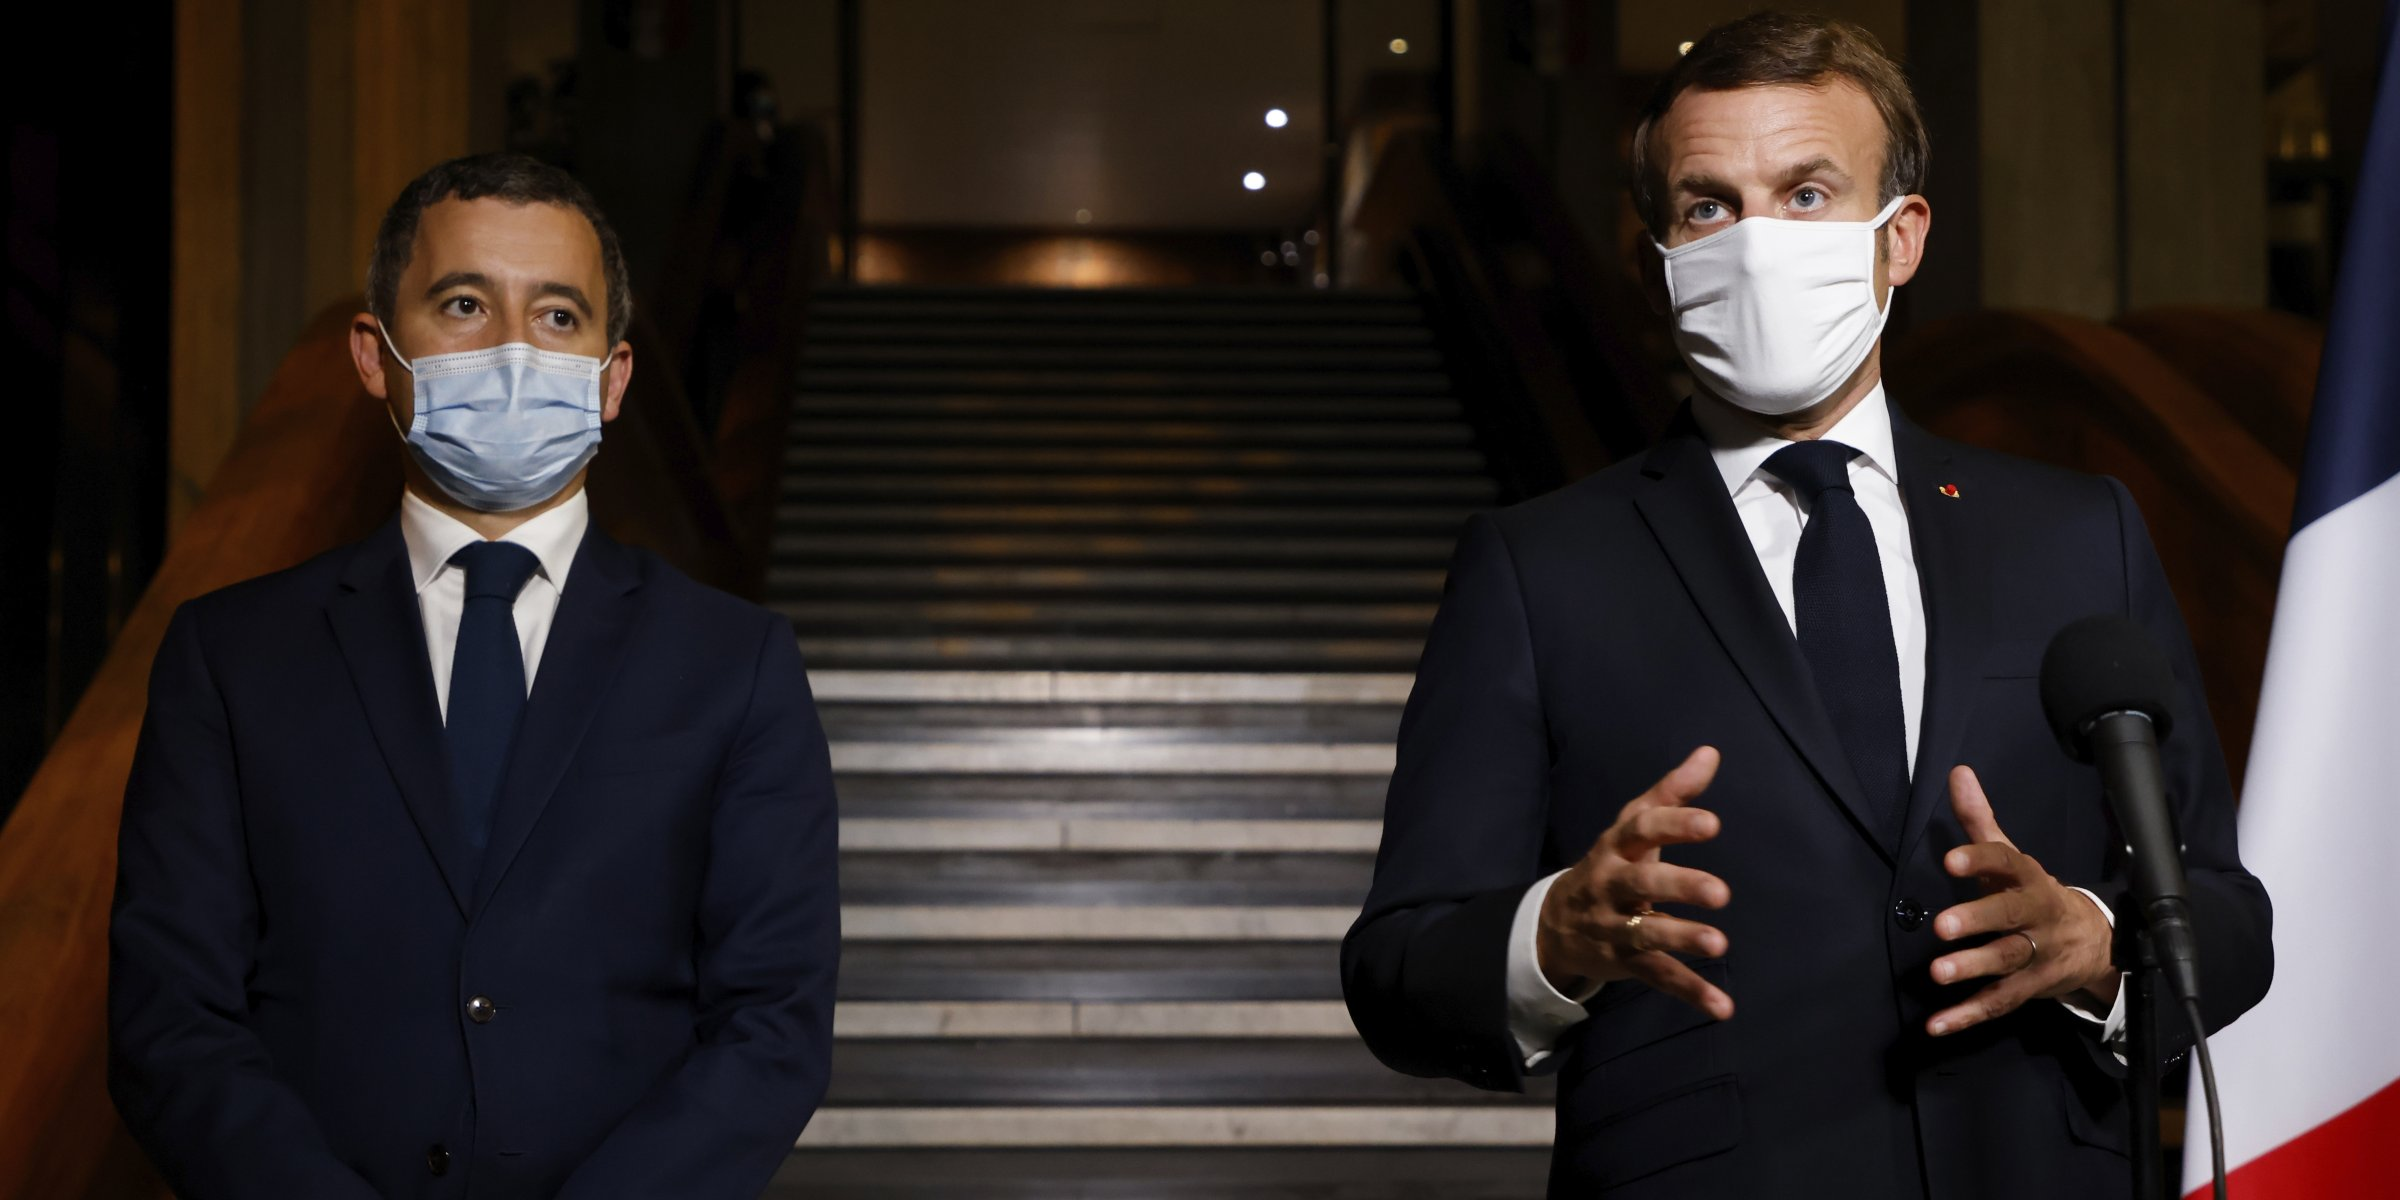 Macron S Anti Islam Pandemic Management Hand Power To French Far Right Daily Sabah